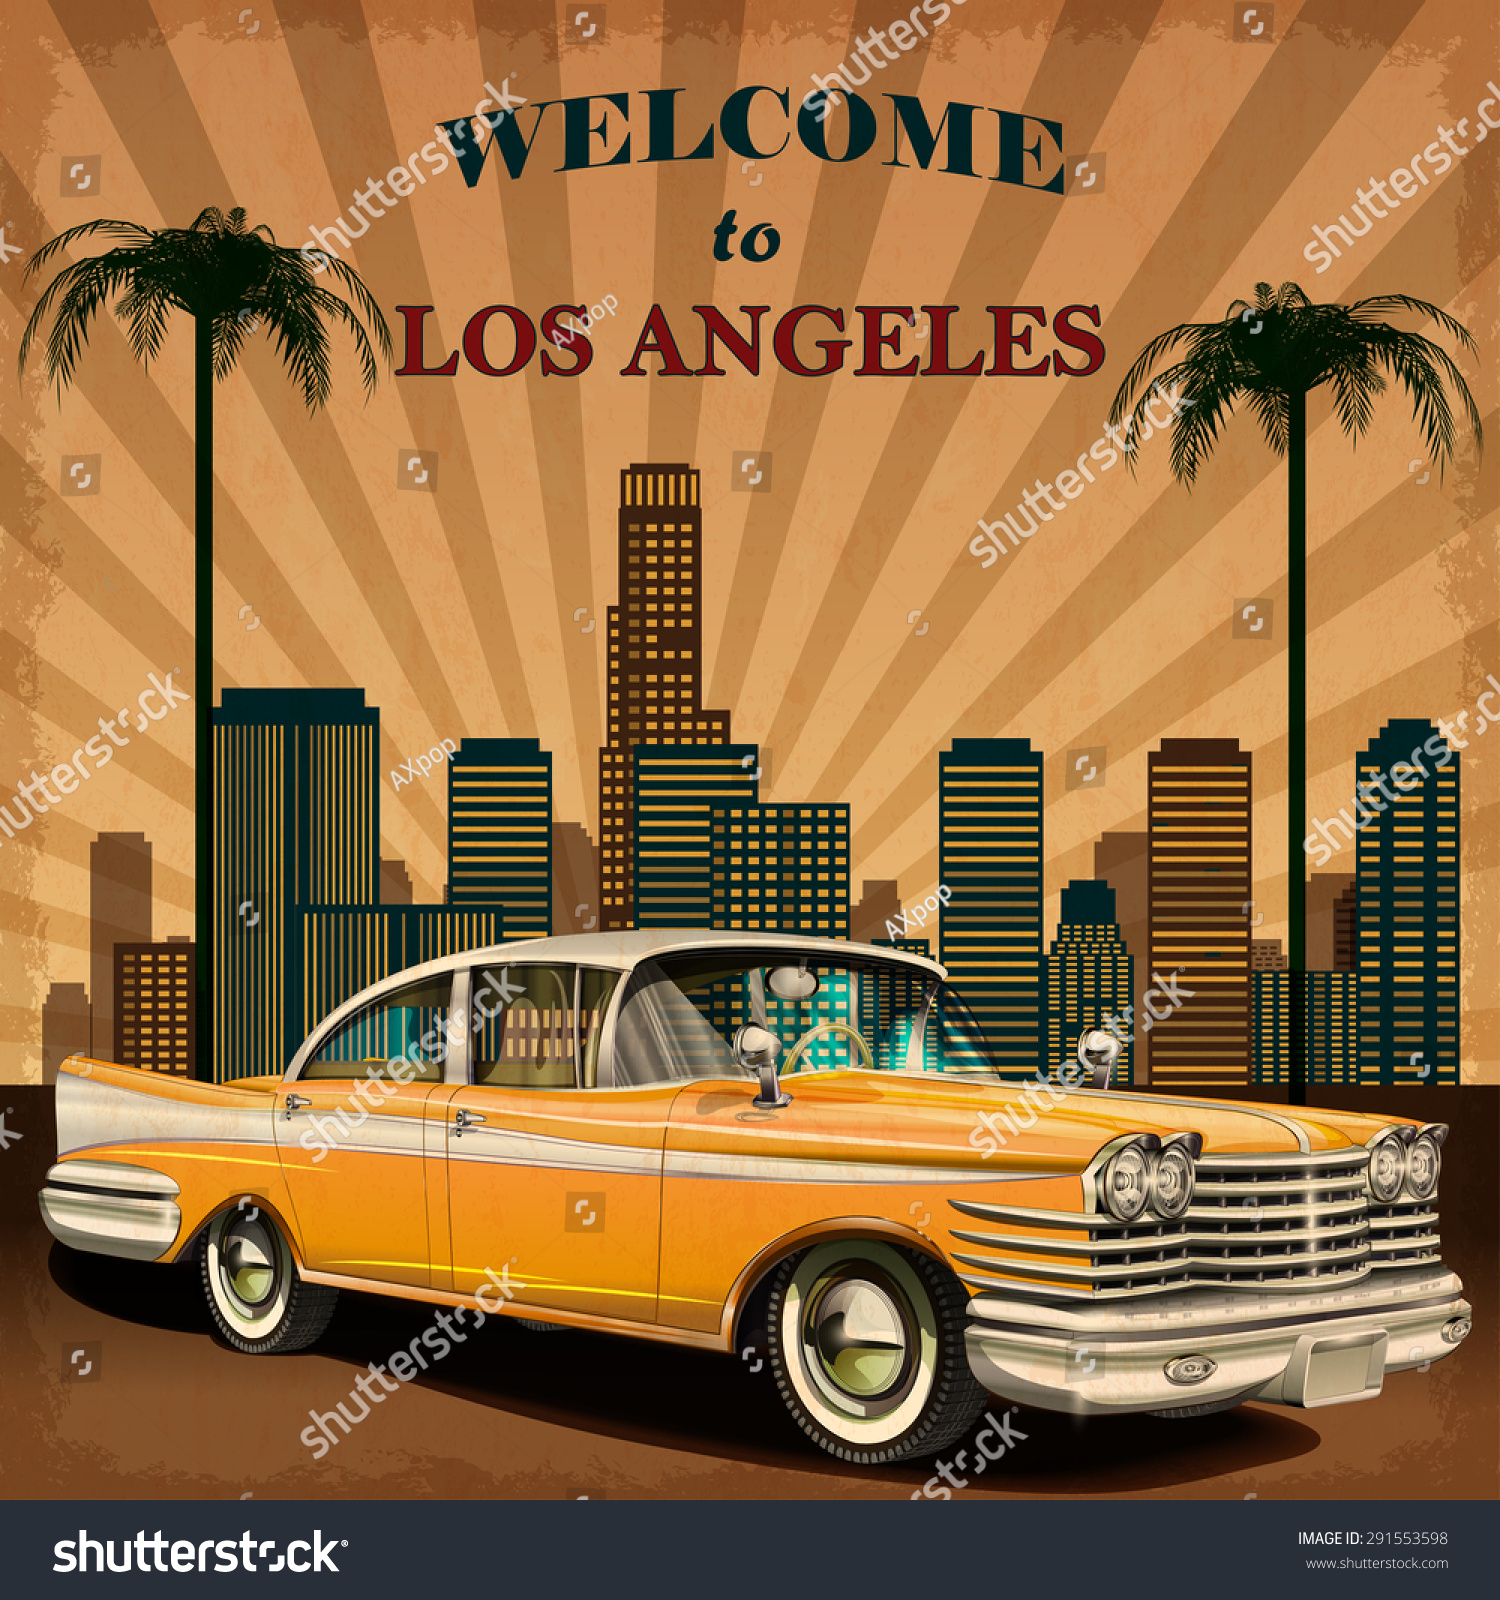 Poster design los angeles - Welcome To Los Angeles Retro Poster